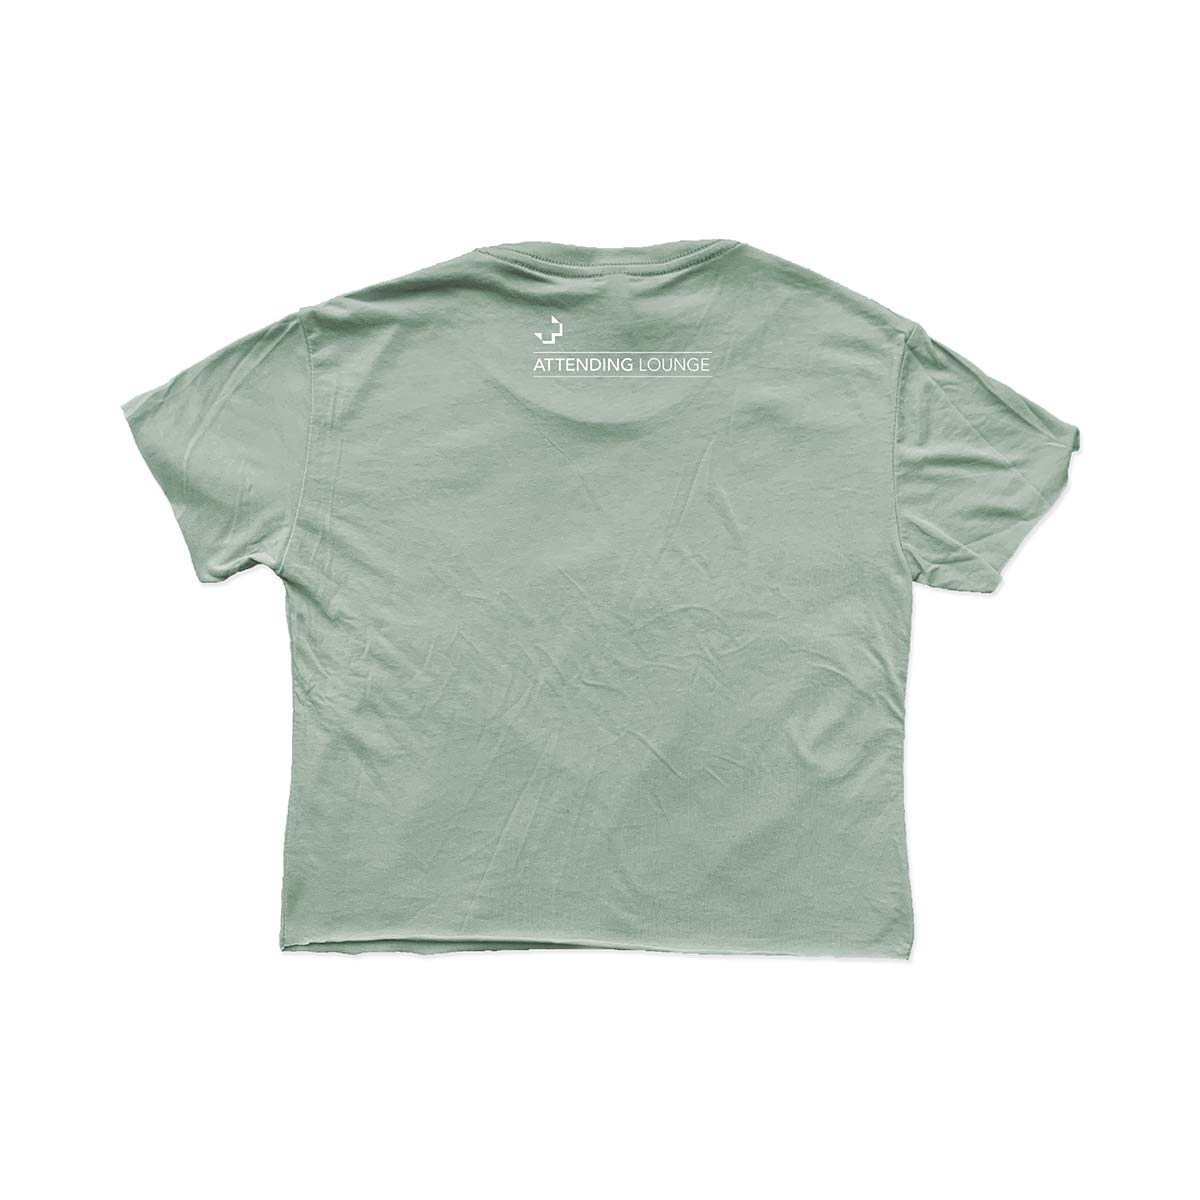 The Attending Lounge T-shirt